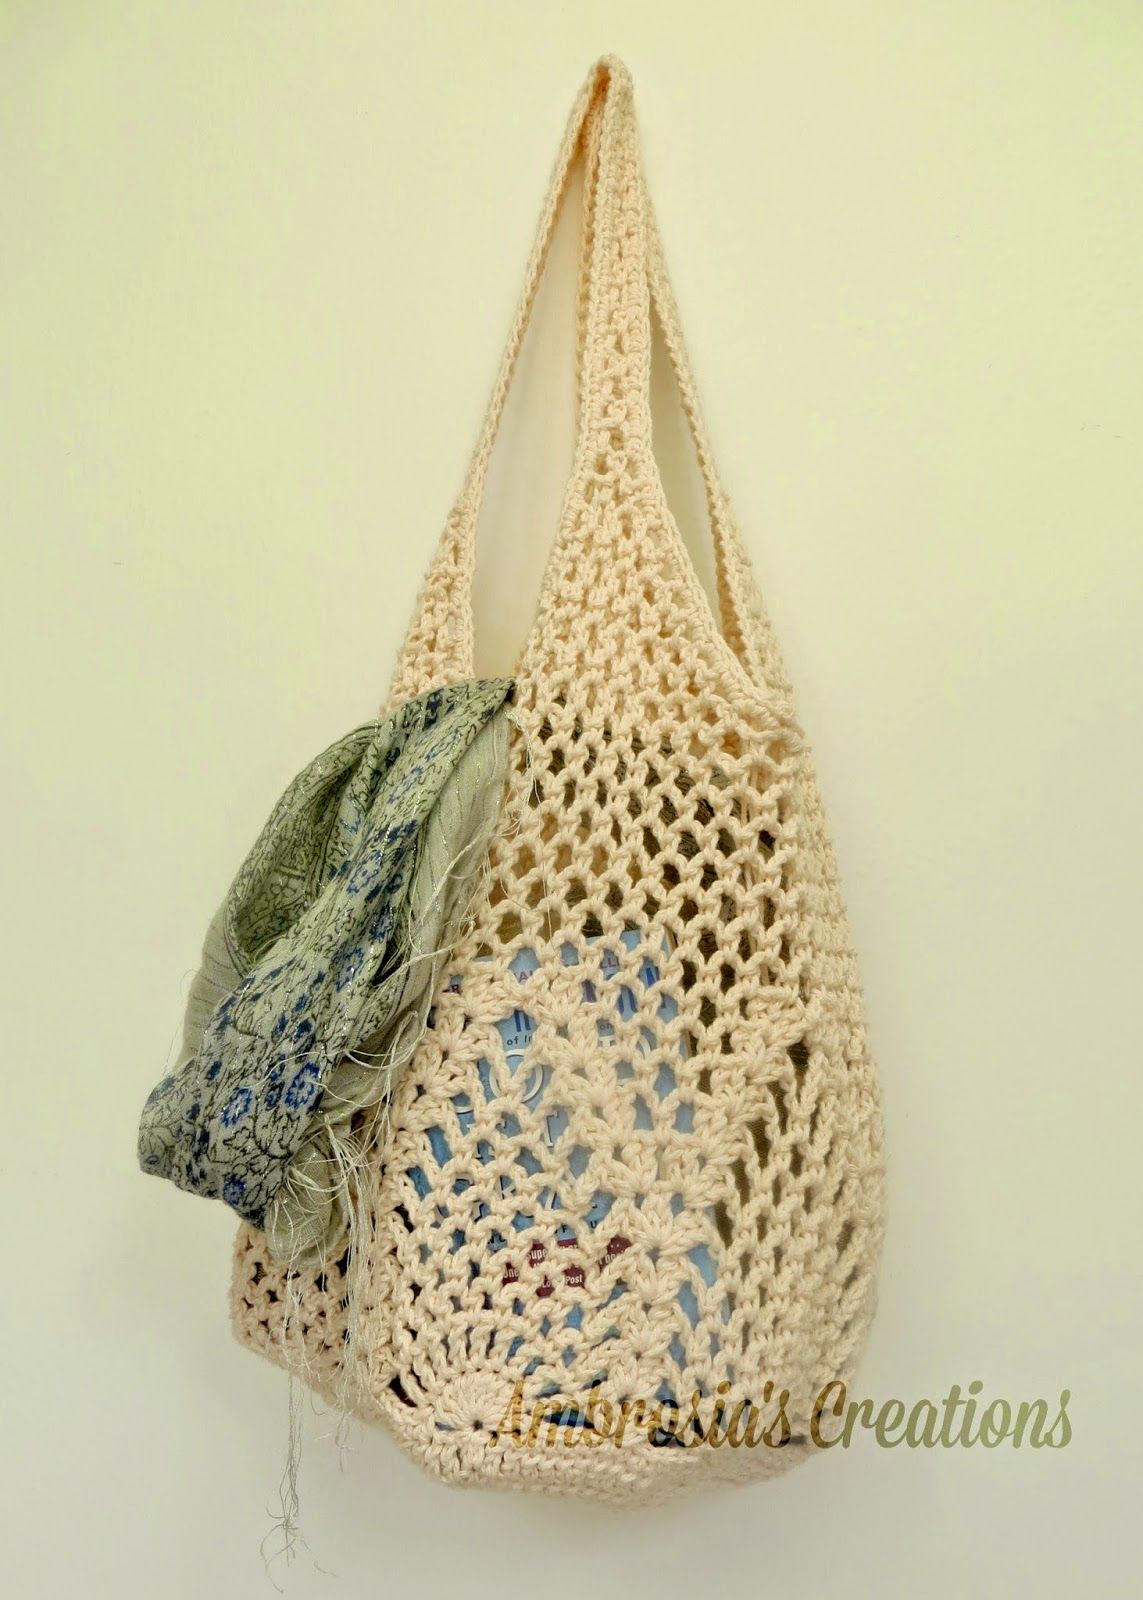 Ambrosias Creations Pattern Pineapple Crochet Market Bag Chart